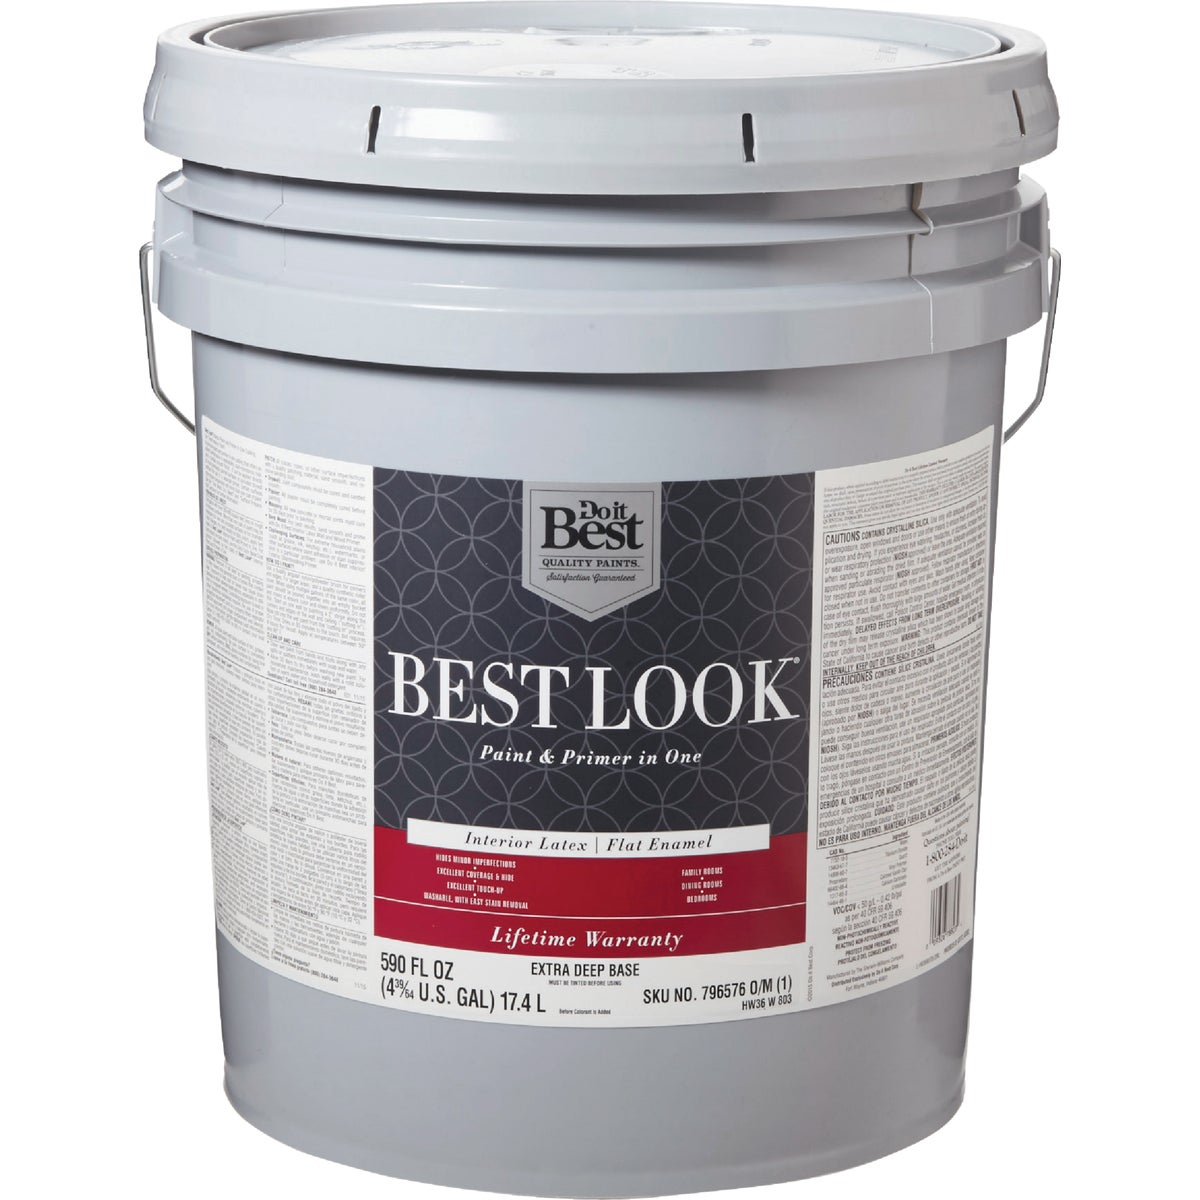 INT FLT EX DEEP BS PAINT - HW36W0803-20 by Do it Best